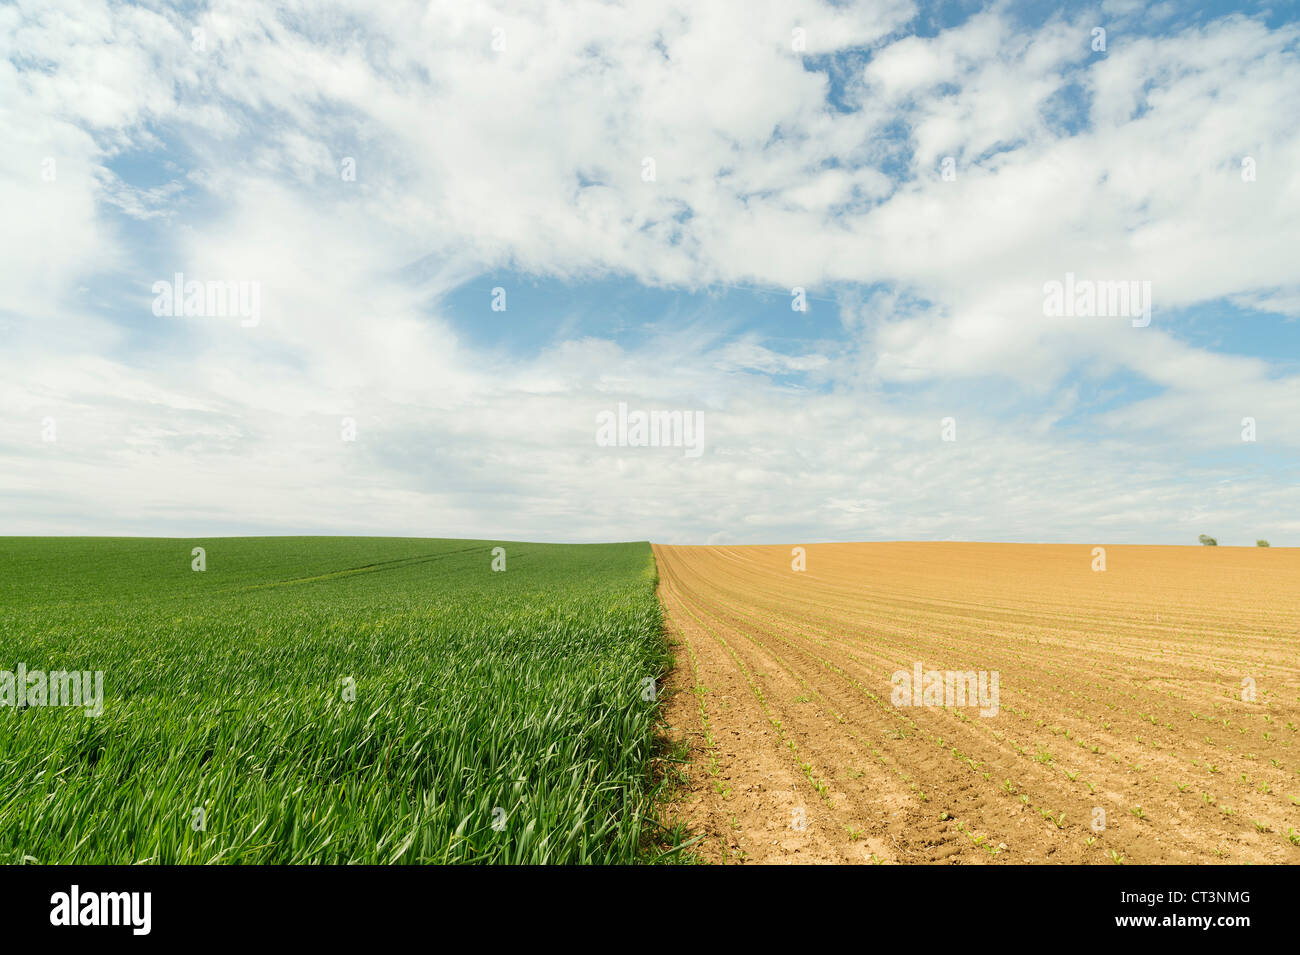 Border between crop fields - Stock Image